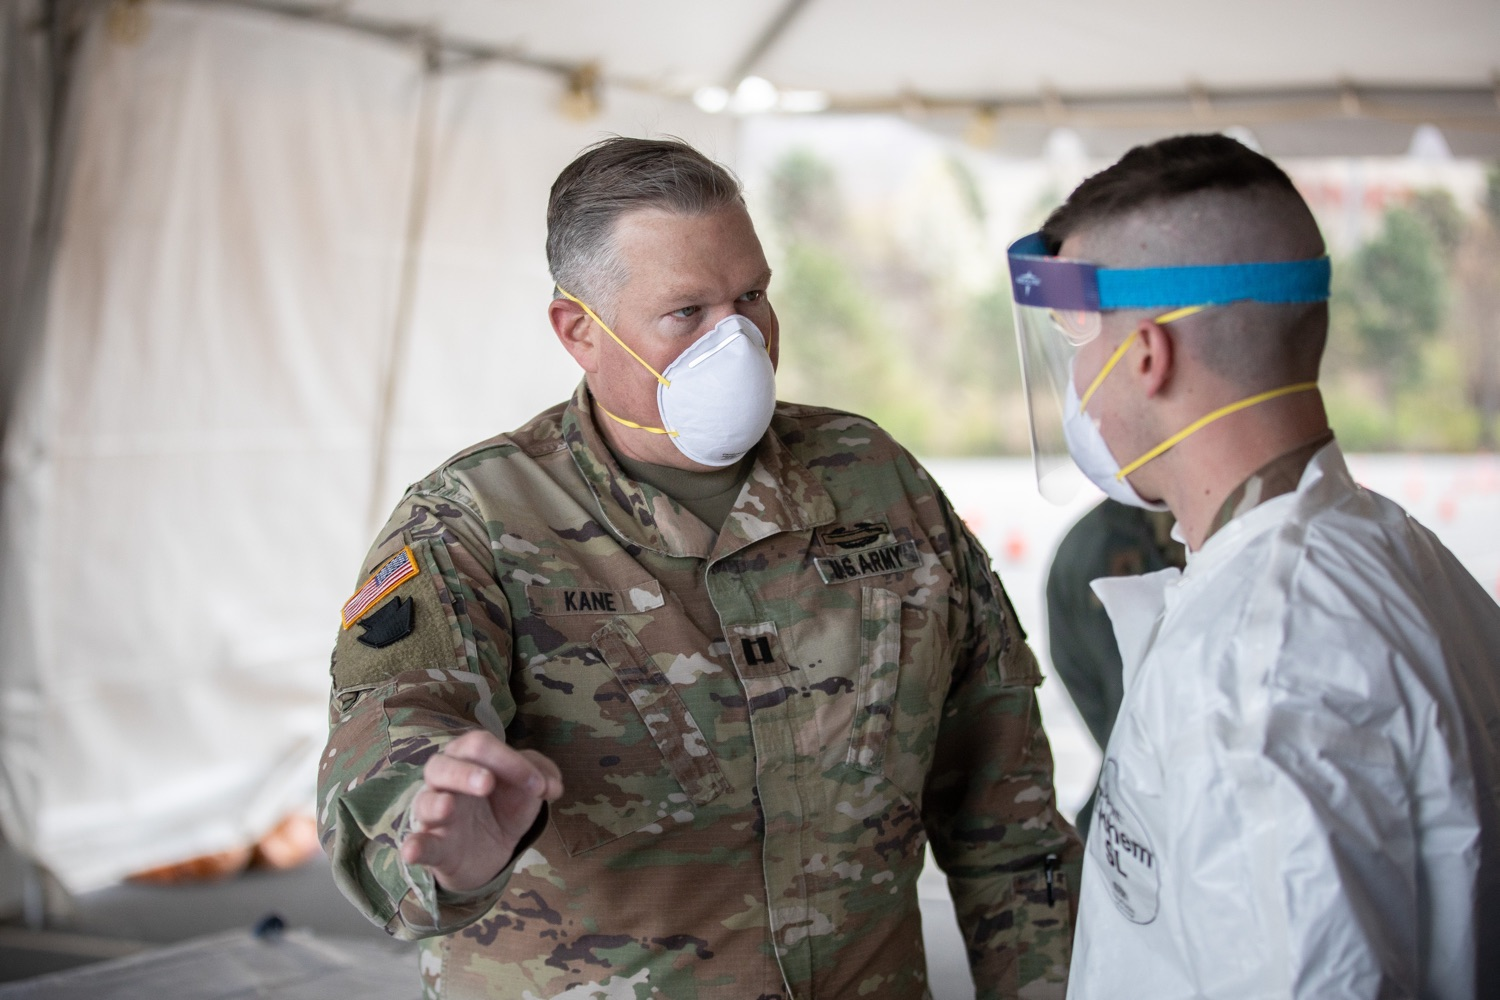 "<a href=""https://filesource.wostreaming.net/commonwealthofpa/photo/17965_doh_Testing_Site_dz_dz_0017.jpg"" target=""_blank"">⇣ Download Photo<br></a>Pennsylvania National Guard Capt. James Kane explaining procedures at the testing site.The Wolf Administration provided pictures of the COVID-19 testing site at Mohegan Sun Arena at Casey Plaza in Wilkes-Barre, Luzerne County, that will provide much-needed testing for symptomatic first responders, health care workers and residents 65 or older throughout Northeastern Pennsylvania.  Monday, April 20, 2020 - Wilkes-Barre, Luzerne County"